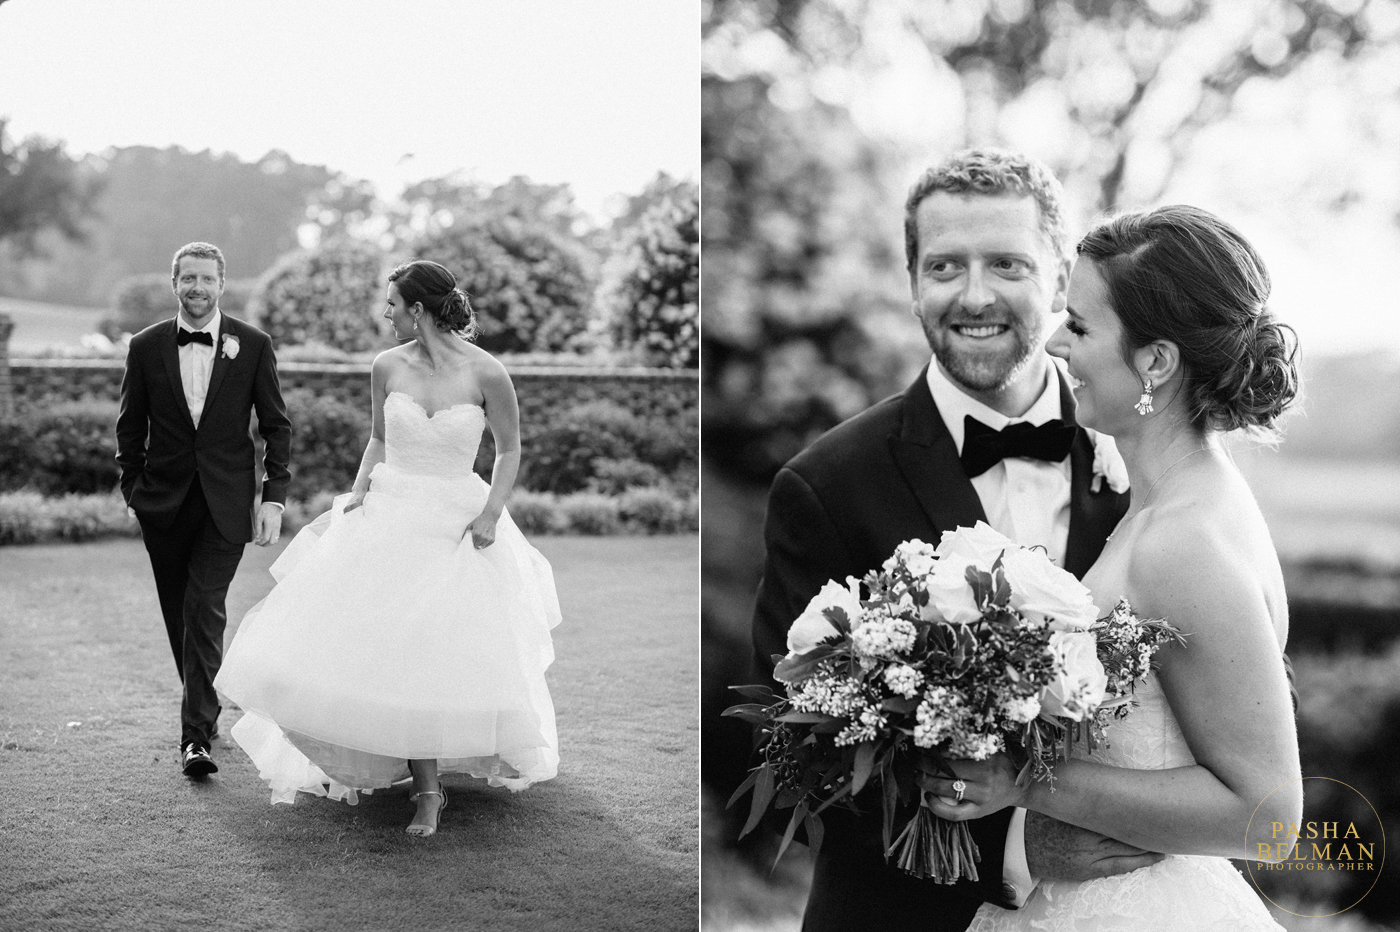 A Super-Stylish Wedding at Pine Lakes Country Club in Myrtle Beach by Pasha Belman Photographer-13